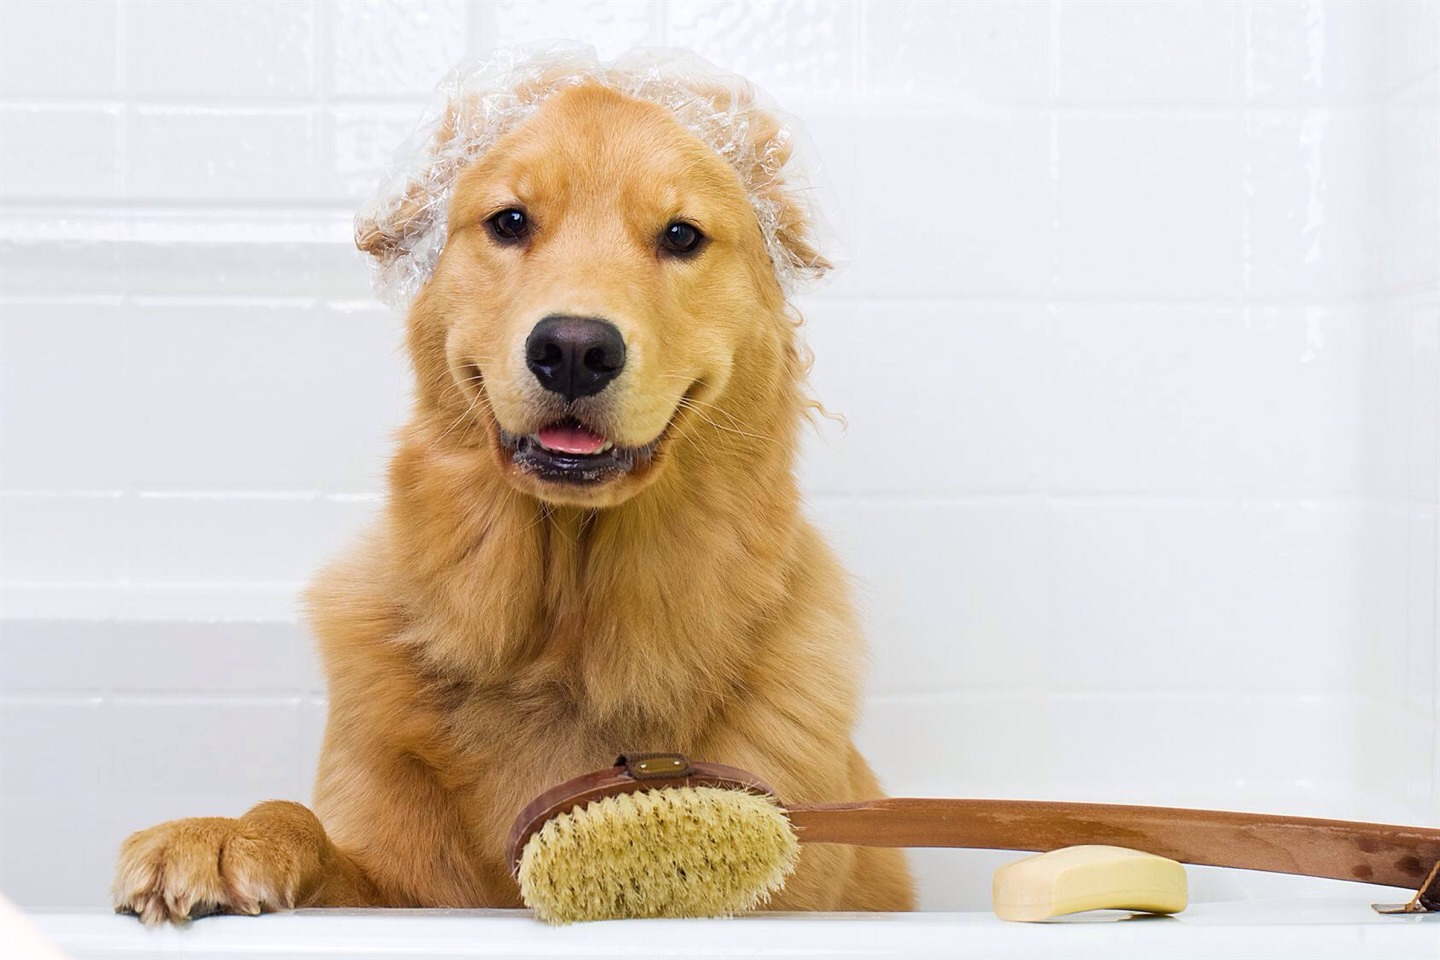 Use Dawn as a flea shampoo! It's gentle on a dog's skin but terminates fleas and flea eggs! Take that, fleas!